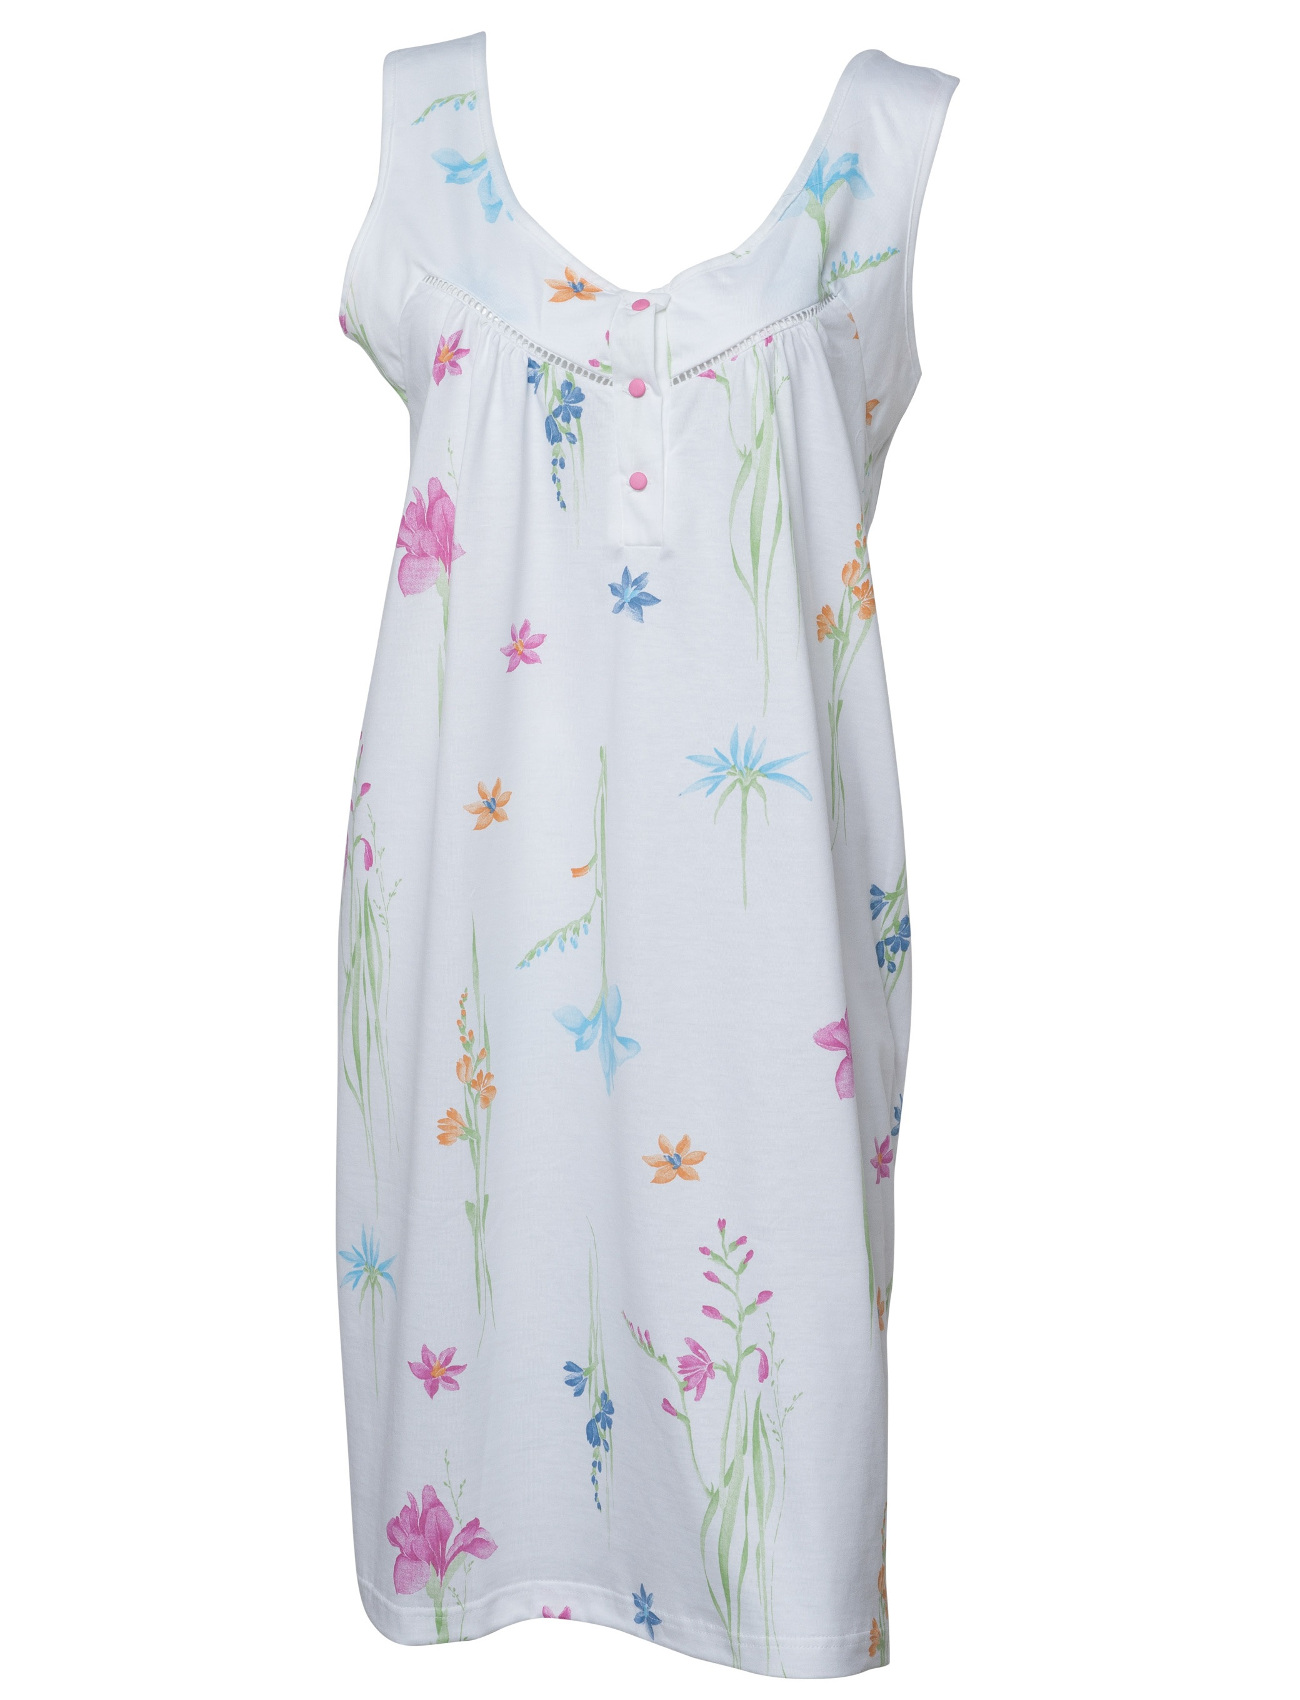 Floral Nightdress 100% Jersey Cotton Sleeveless Flower Nighty Womens  Nightwear 19da9cb2c